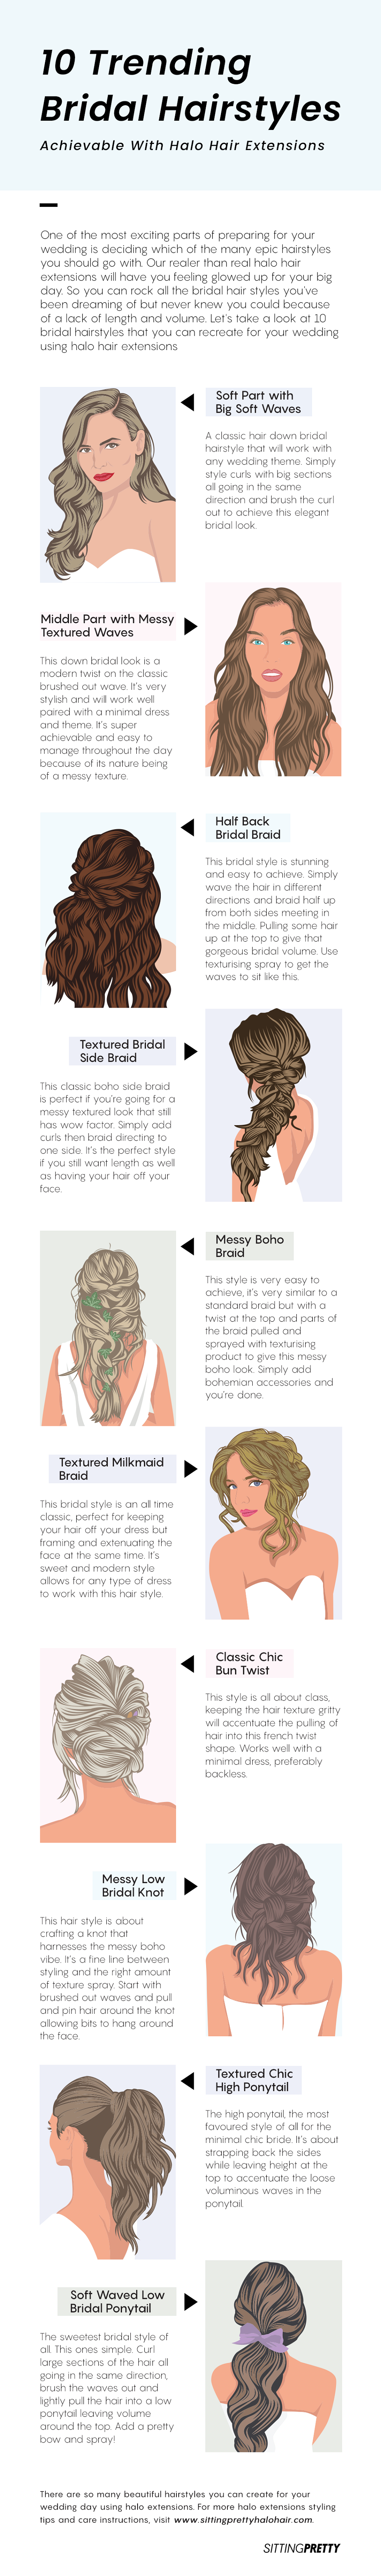 trending bridal hairstyles with halo hair extensions